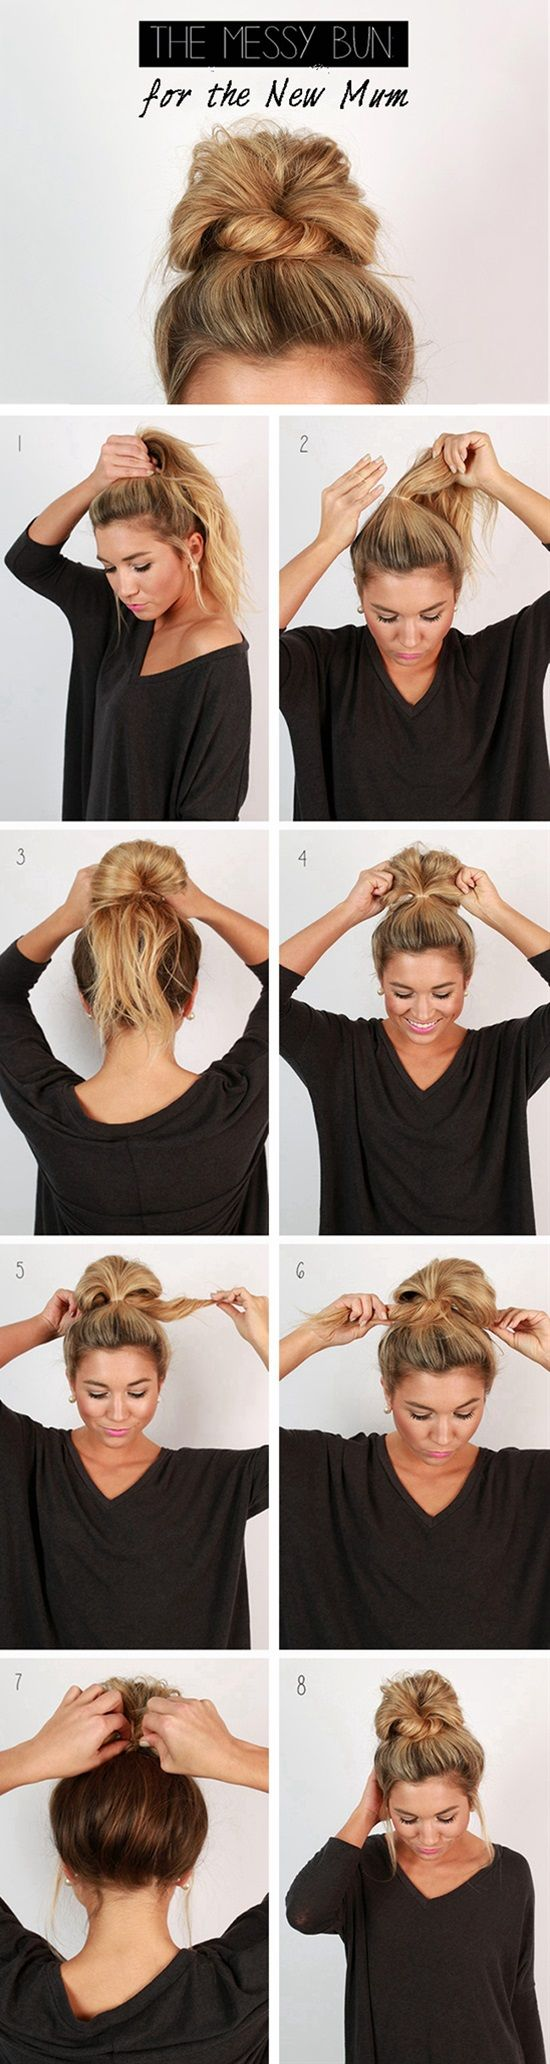 15 Easy Quick Hairstyles For Office Hair Beauty Pinterest